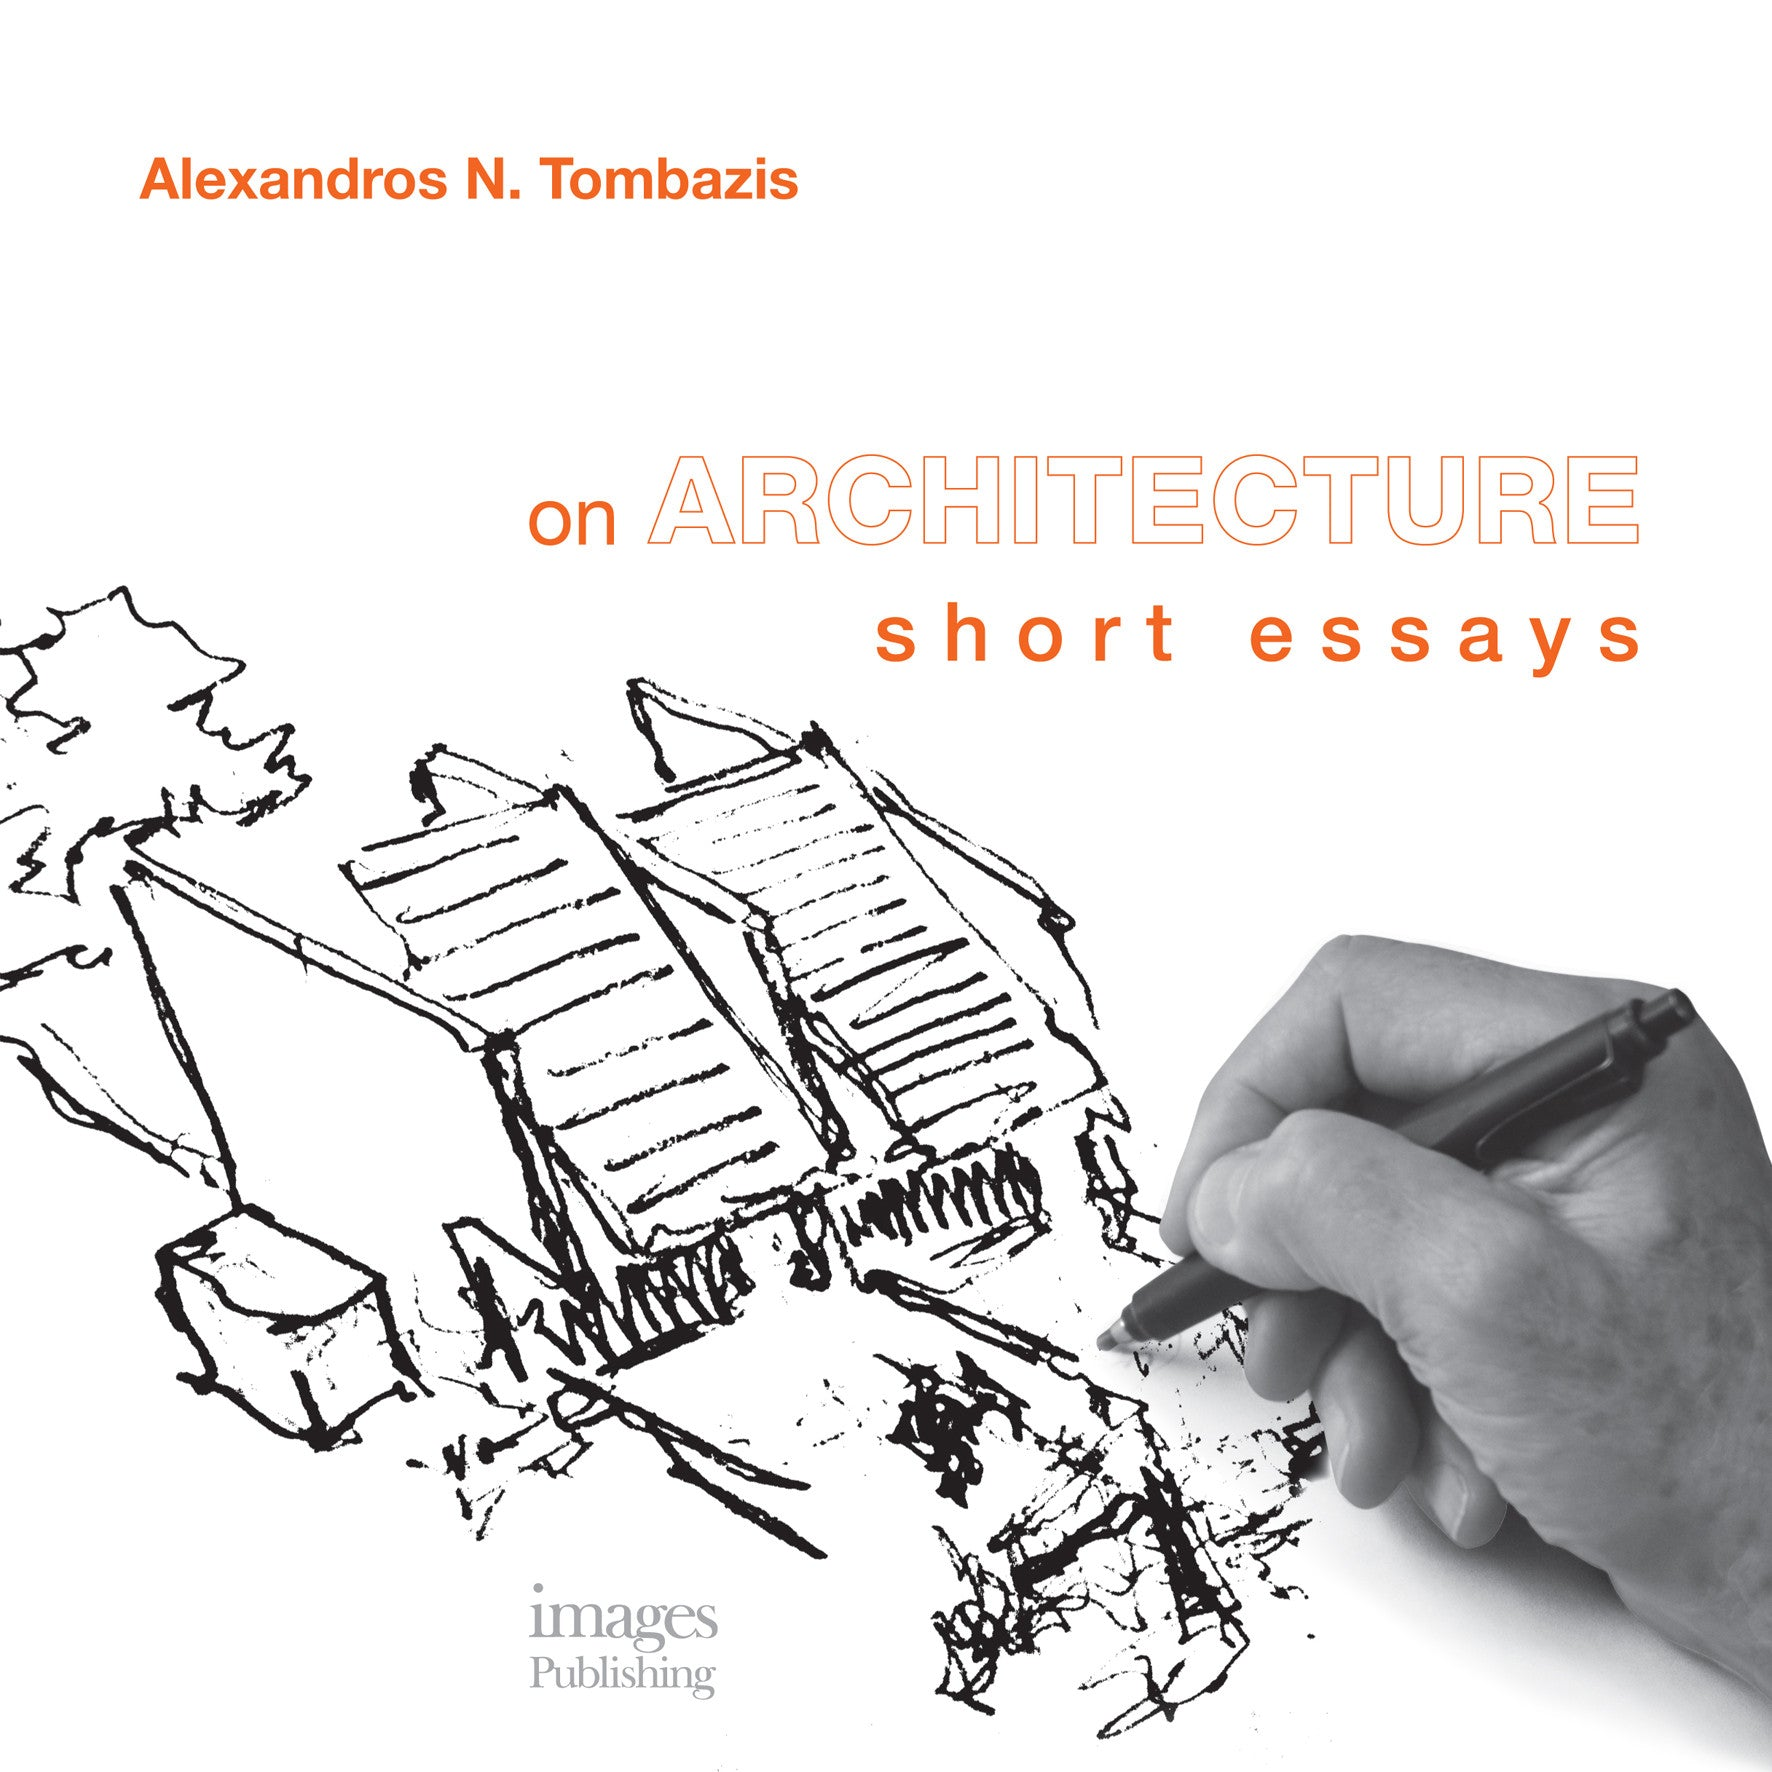 architecture books images publishing architects page  on architecture short essays architecture books alexandros n tombazis